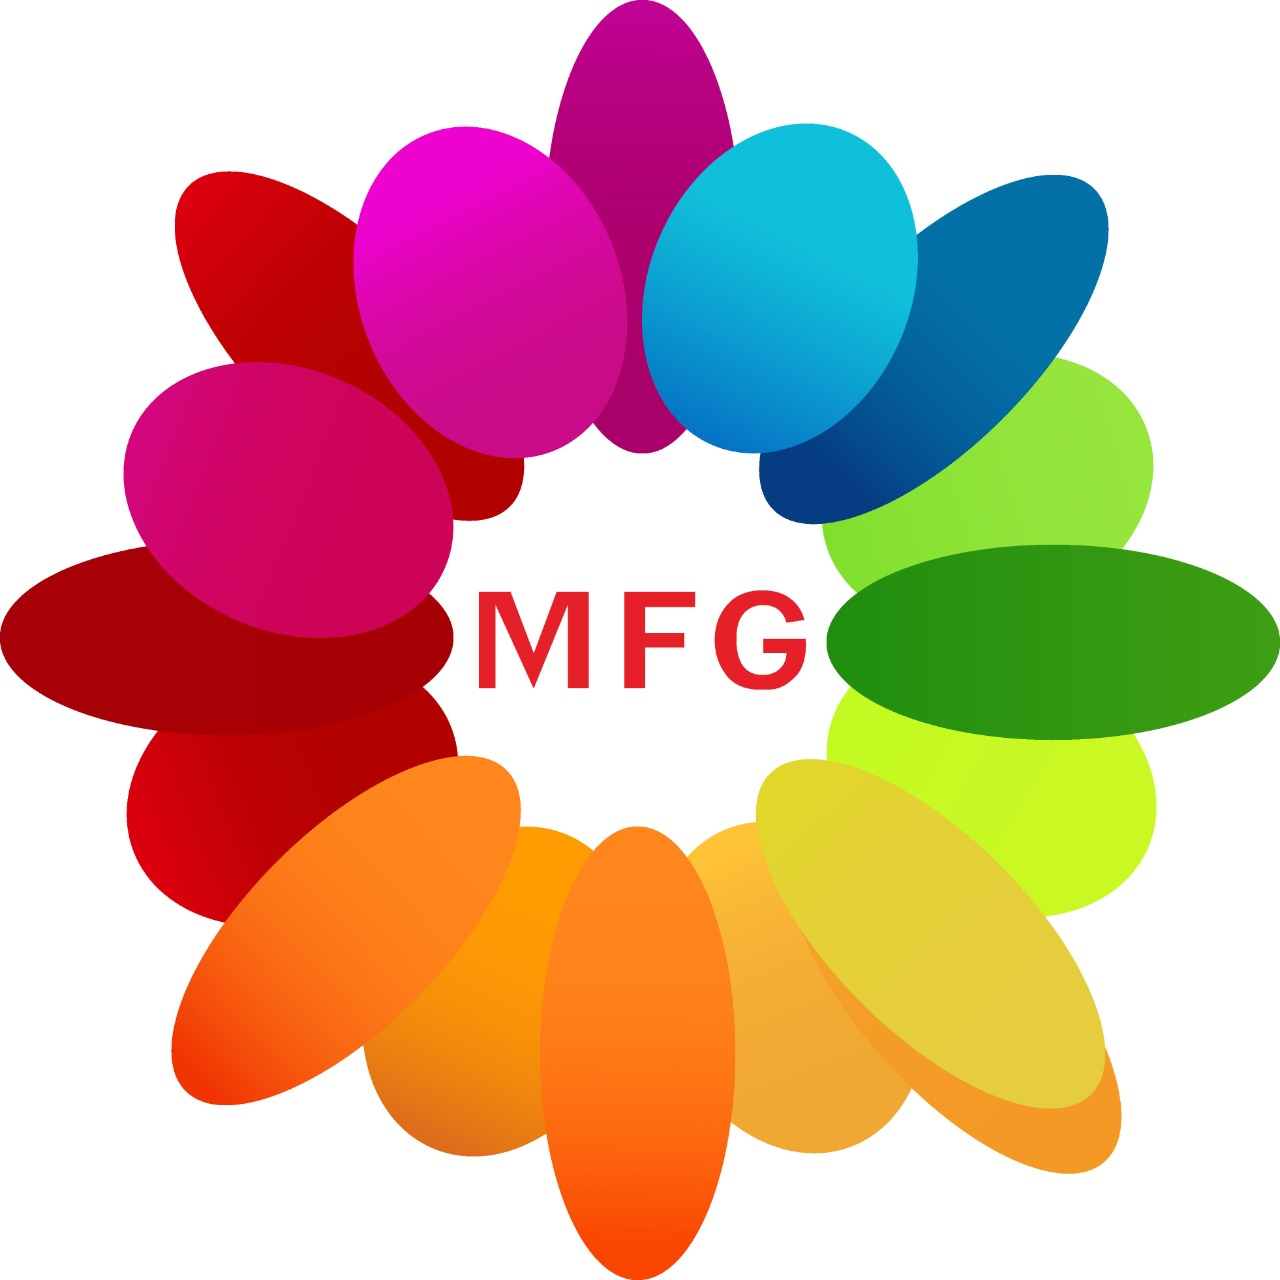 Bunch of 15 red carnation with 1 kg chocolate truffle heart shape cake with  1 feet white teddy bear